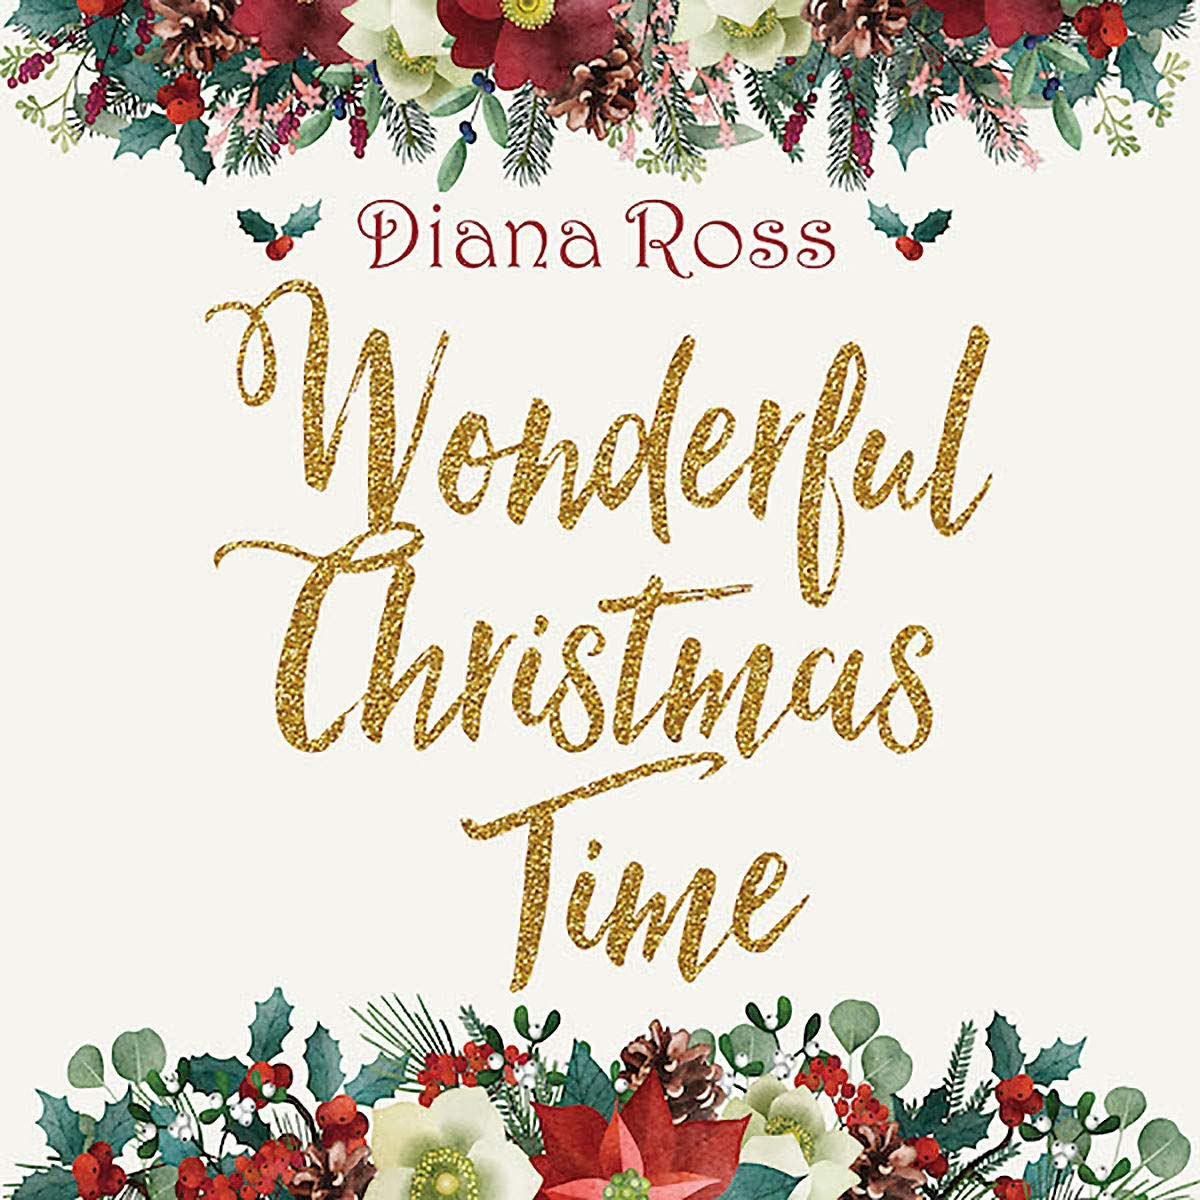 Diana Ross - Wonderful Christmas Time - Amazon.com Music